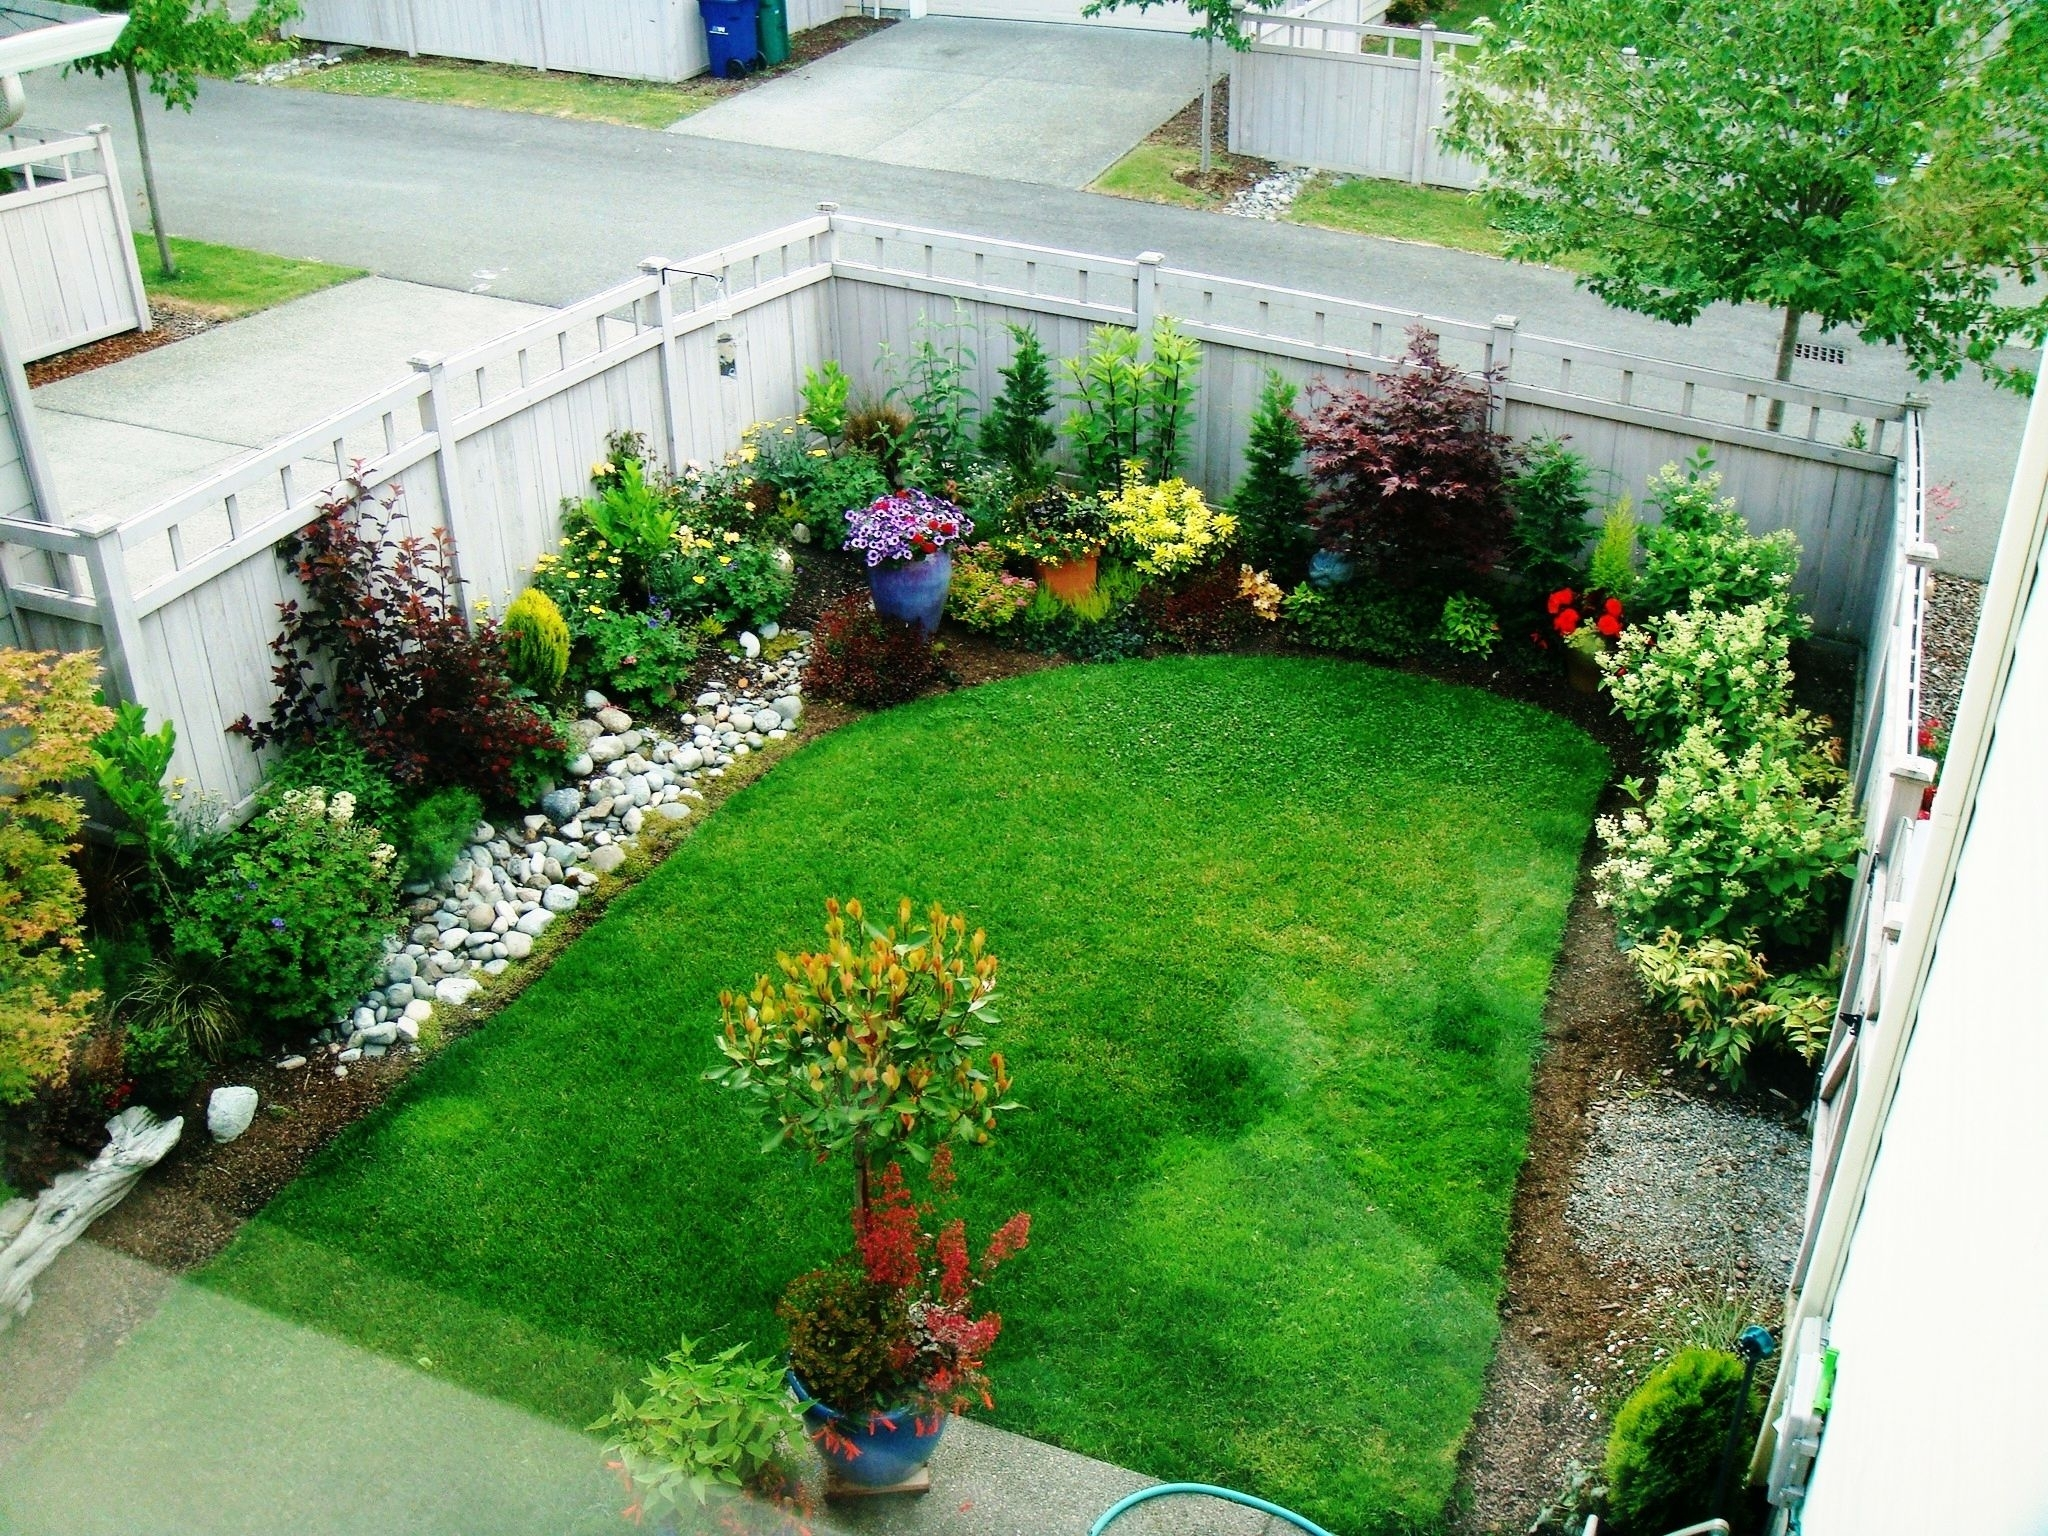 25+ Best Ideas About Small Gardens On Pinterest | Small Garden with Small Garden Ideas